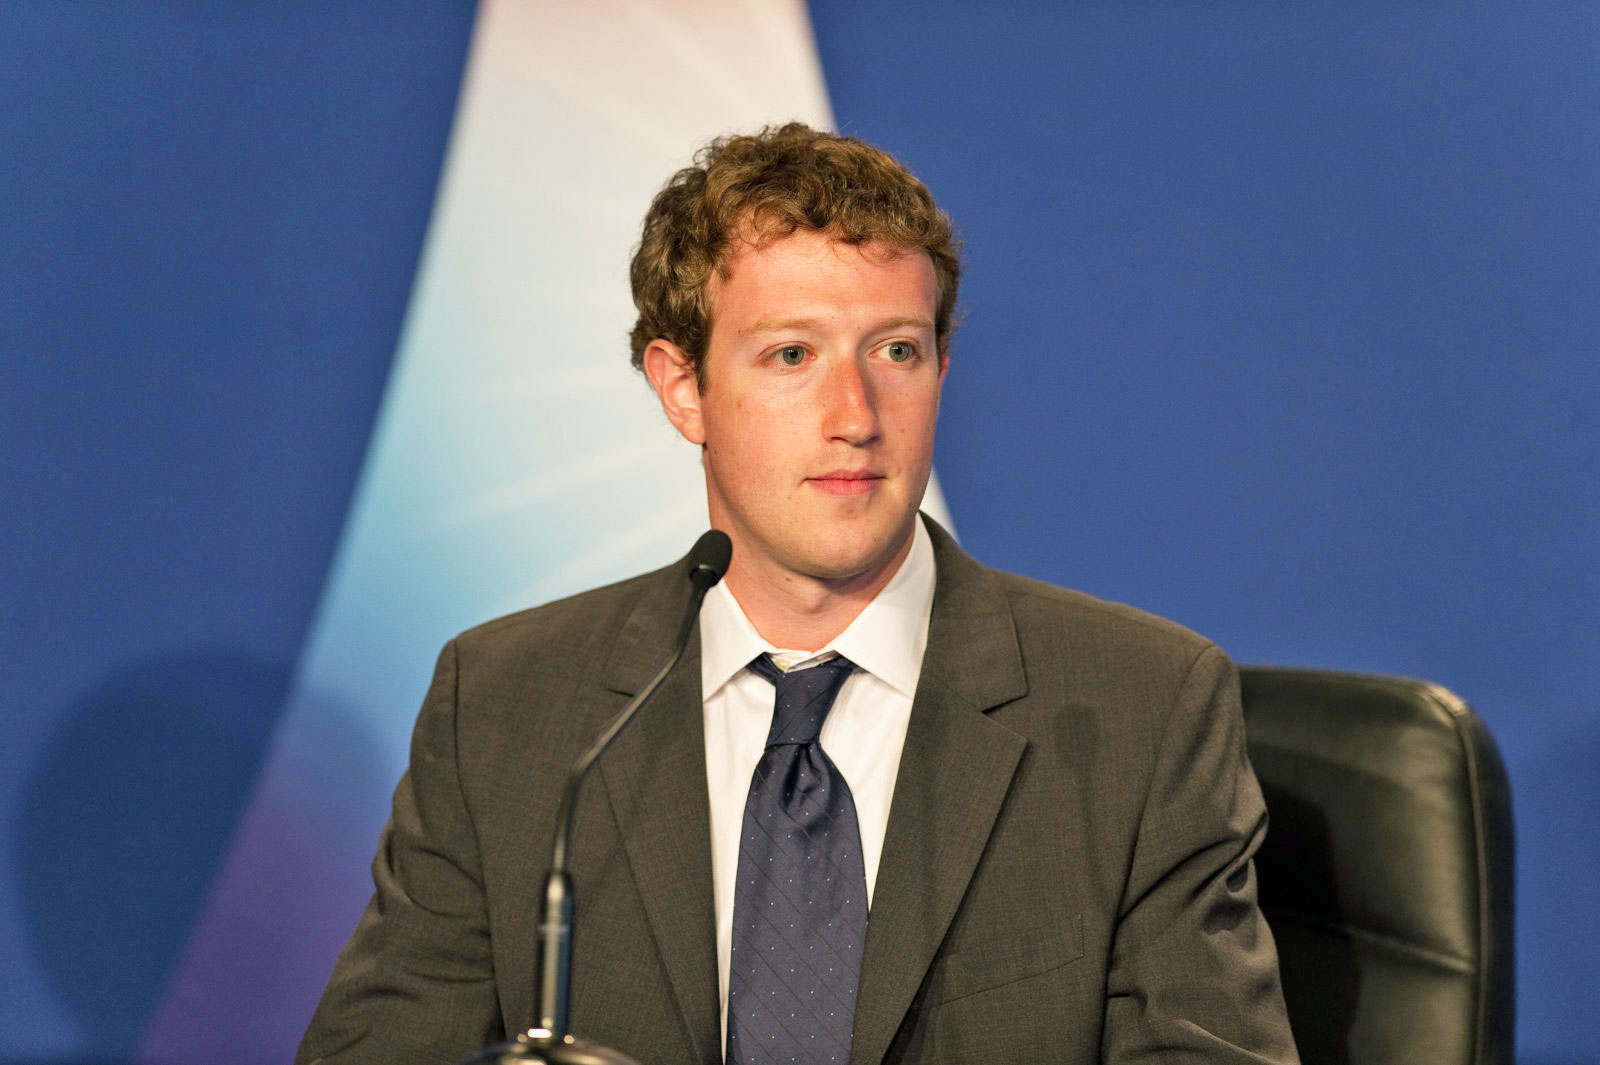 Mark Zuckerberg broke his silence, but he didnt have much to say